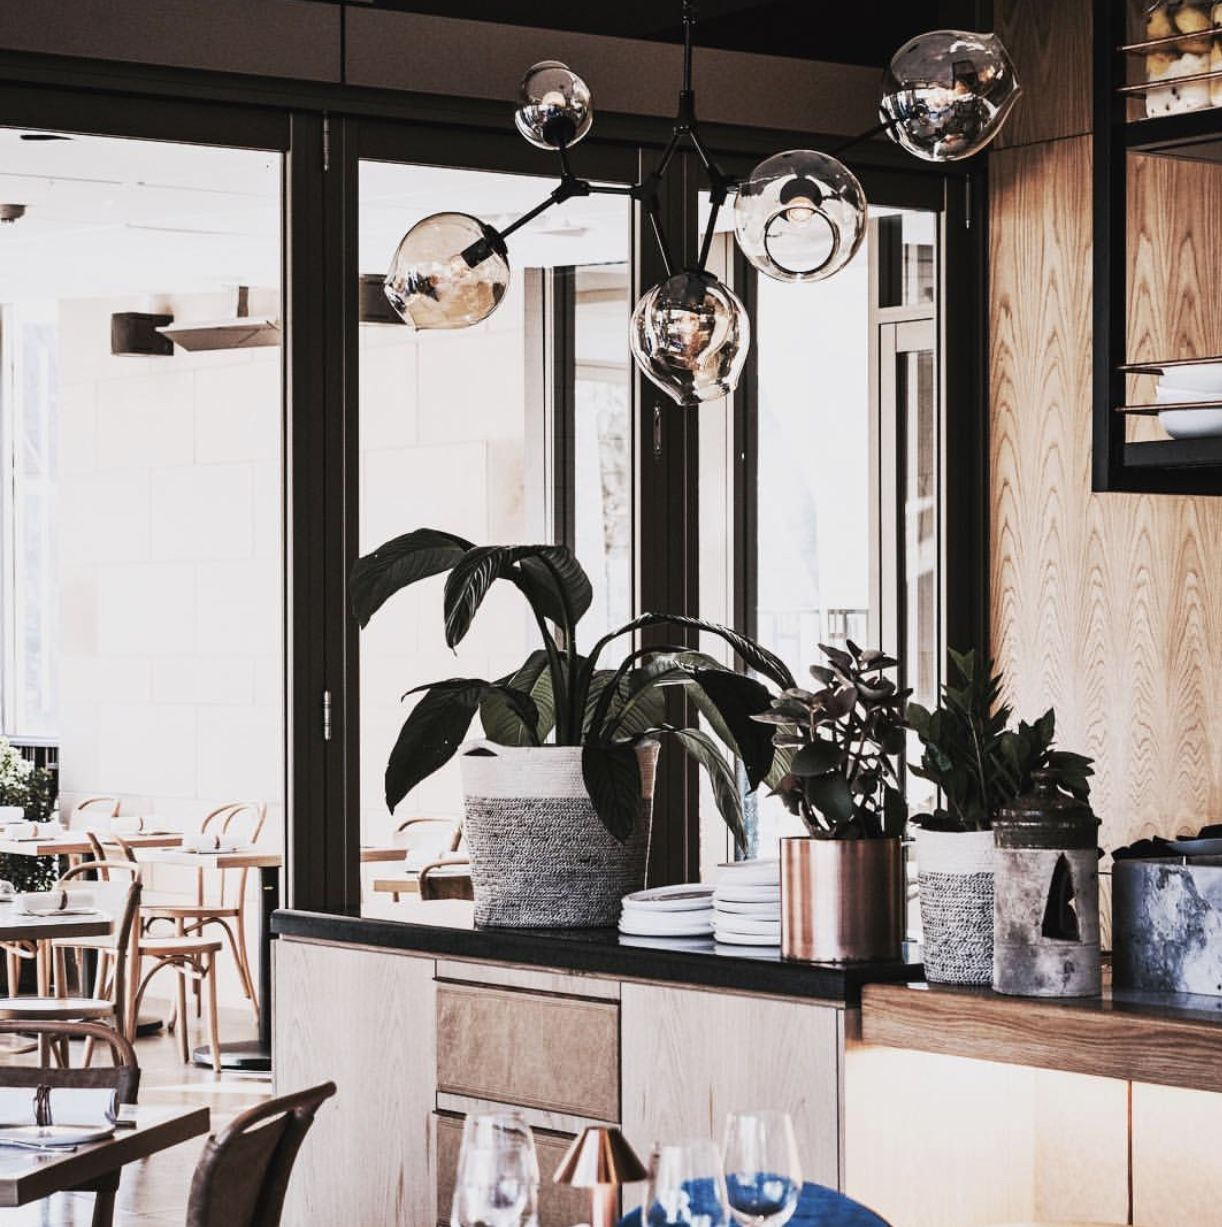 This Article Will Tell Which Are The Best Lighting Stores In Sydney 15 lighting stores in sydney This Article Will Tell Which Are The Best Lighting Stores In Sydney This Article Will Tell Which Are The Best Lighting Stores In Sydney 15